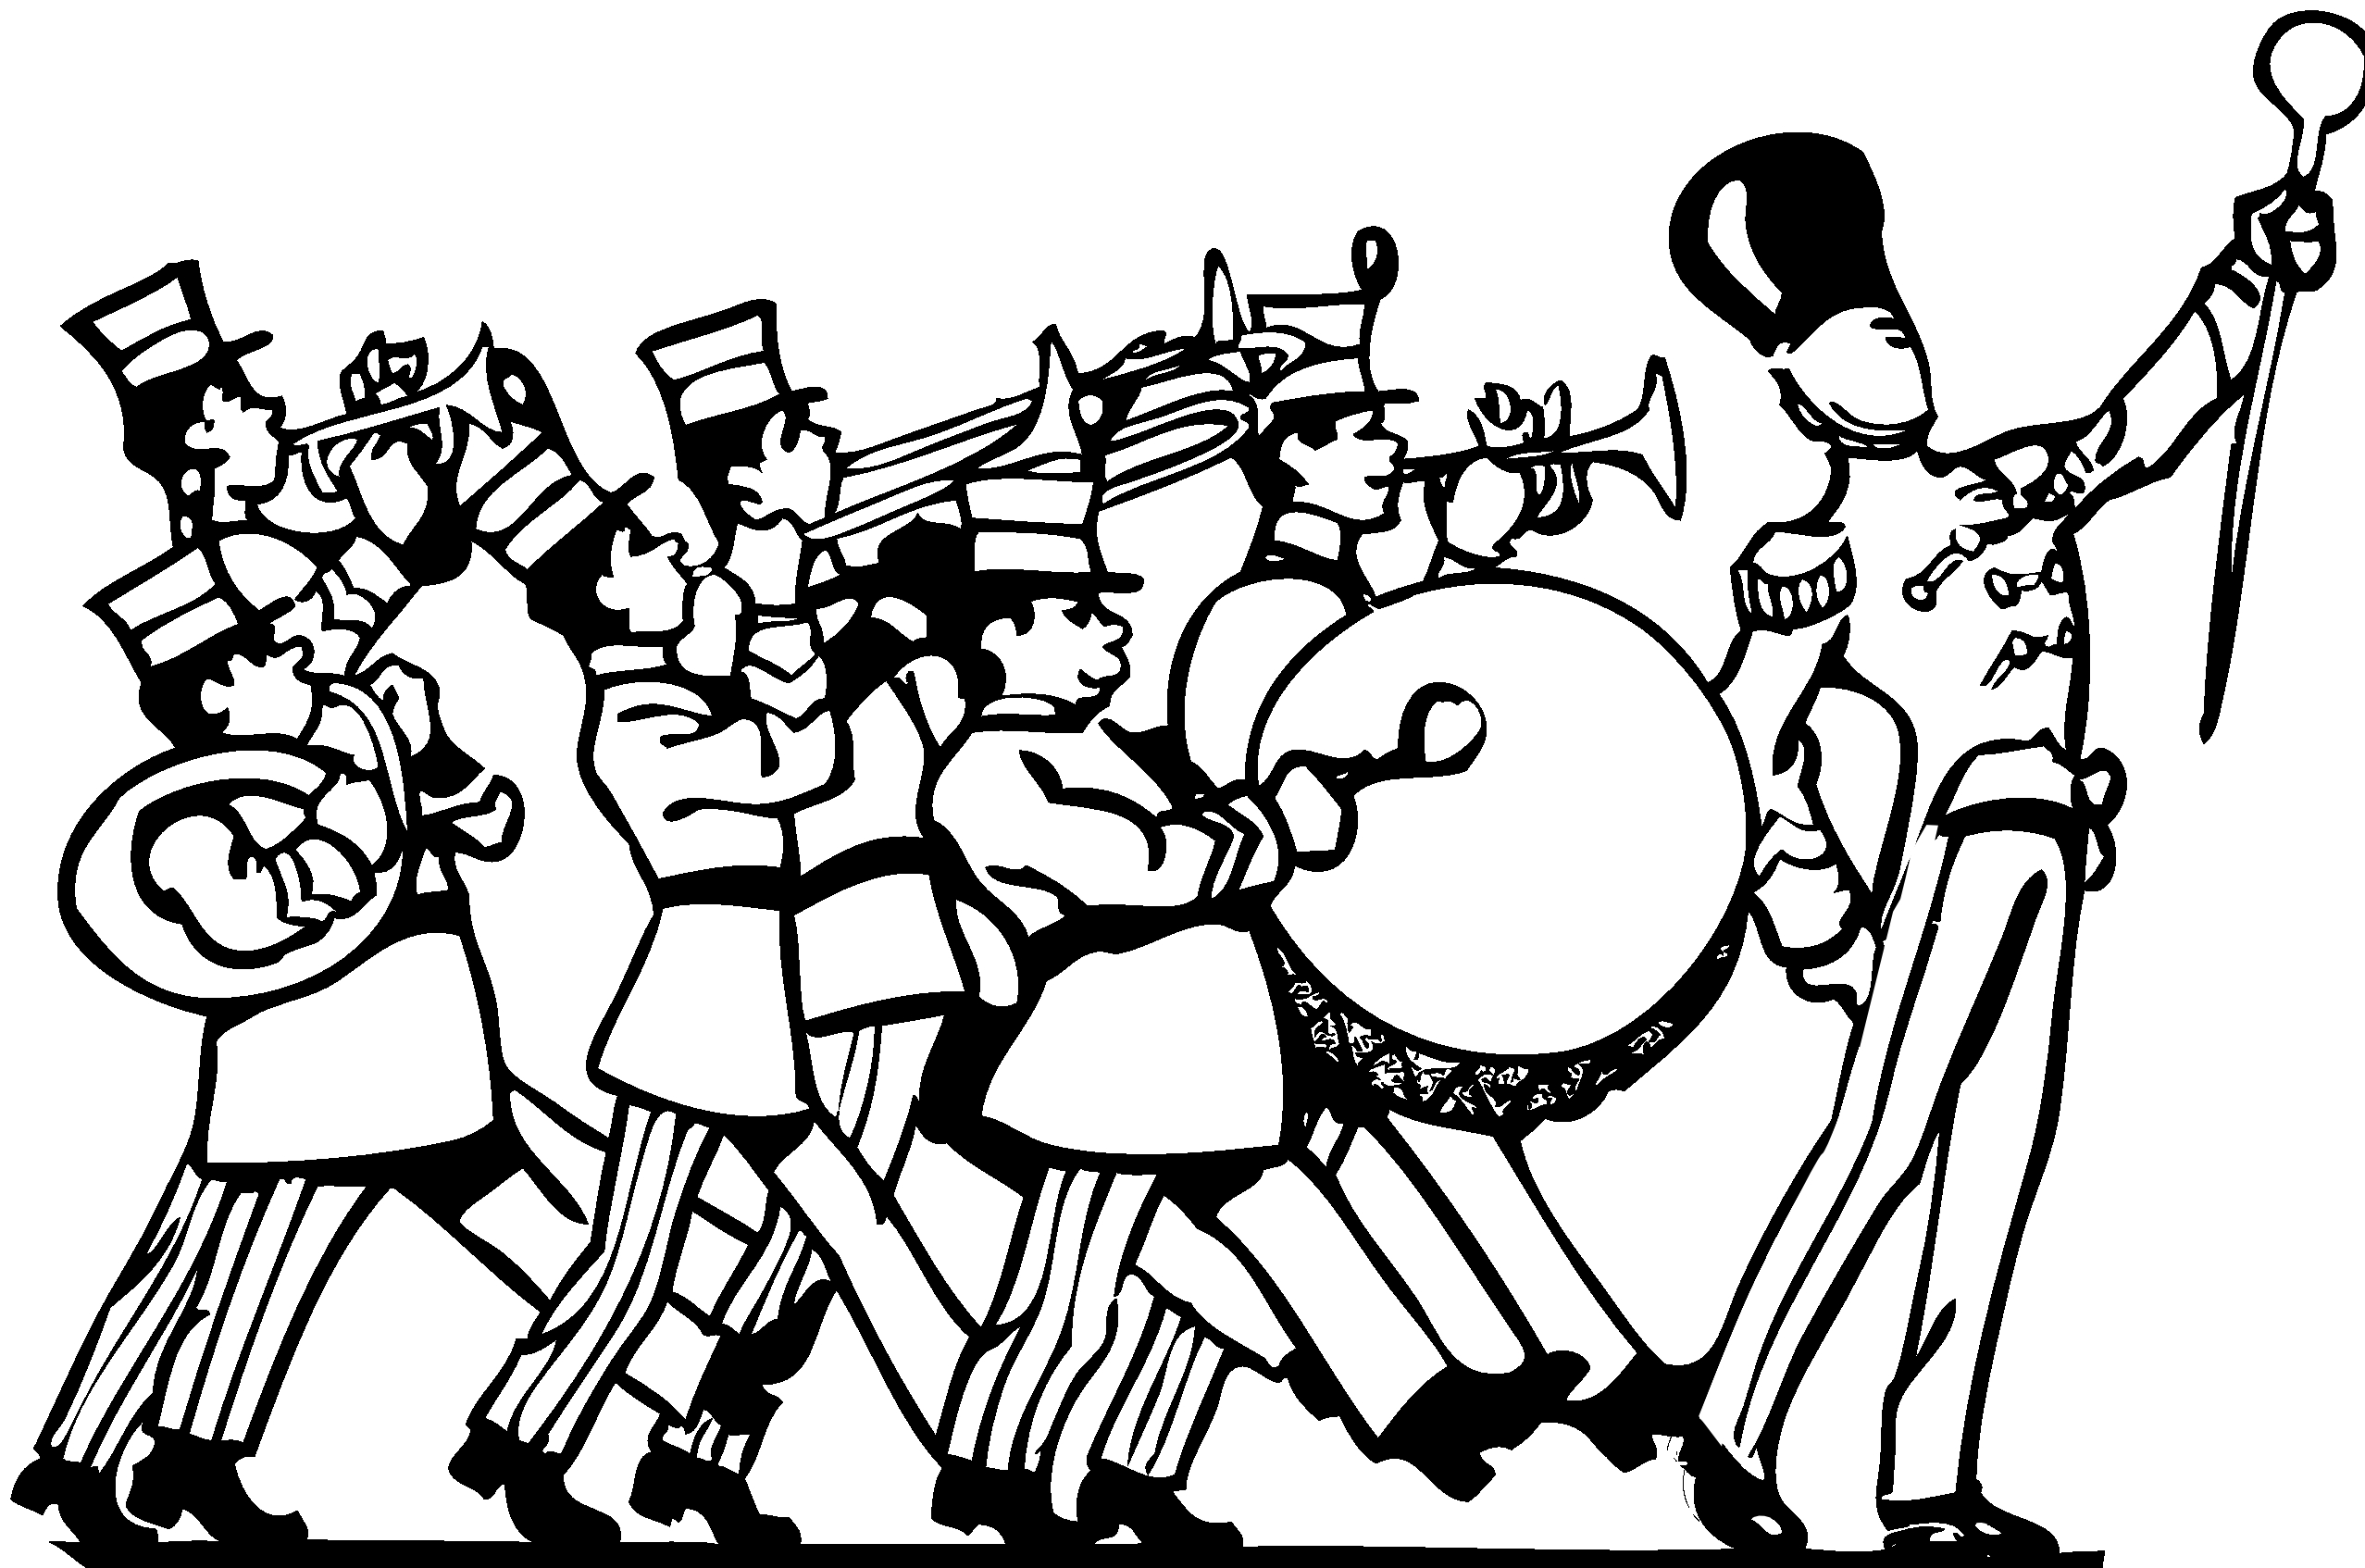 Band clipart black and white, Band black and white.